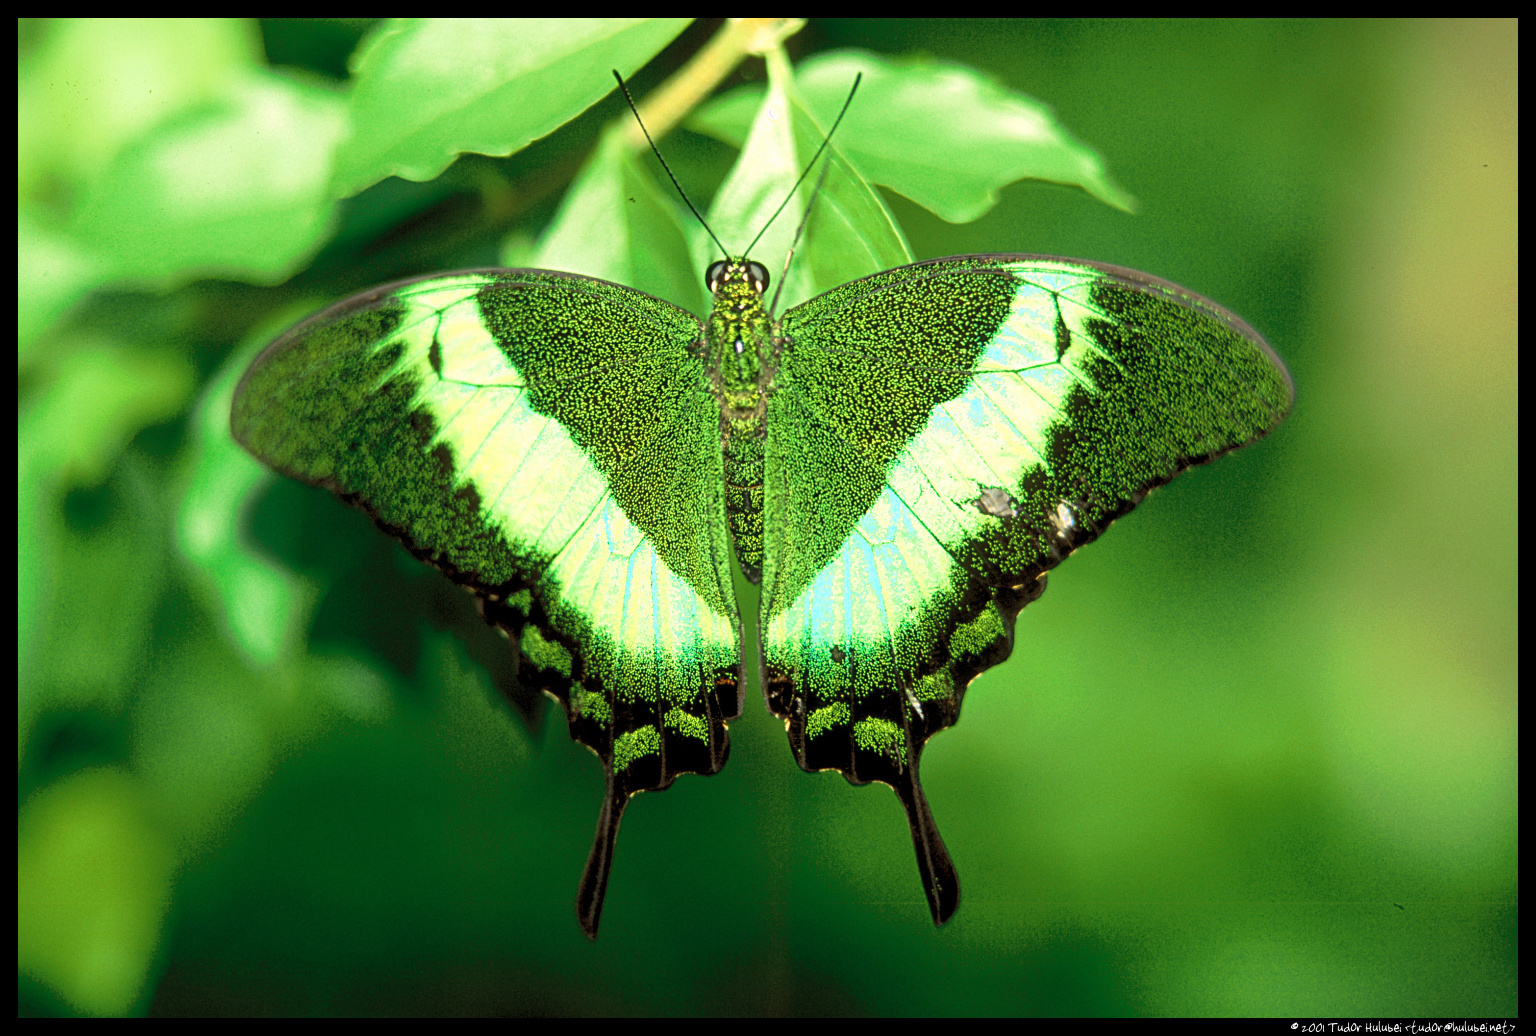 Butterfly photos: Green Butterfly